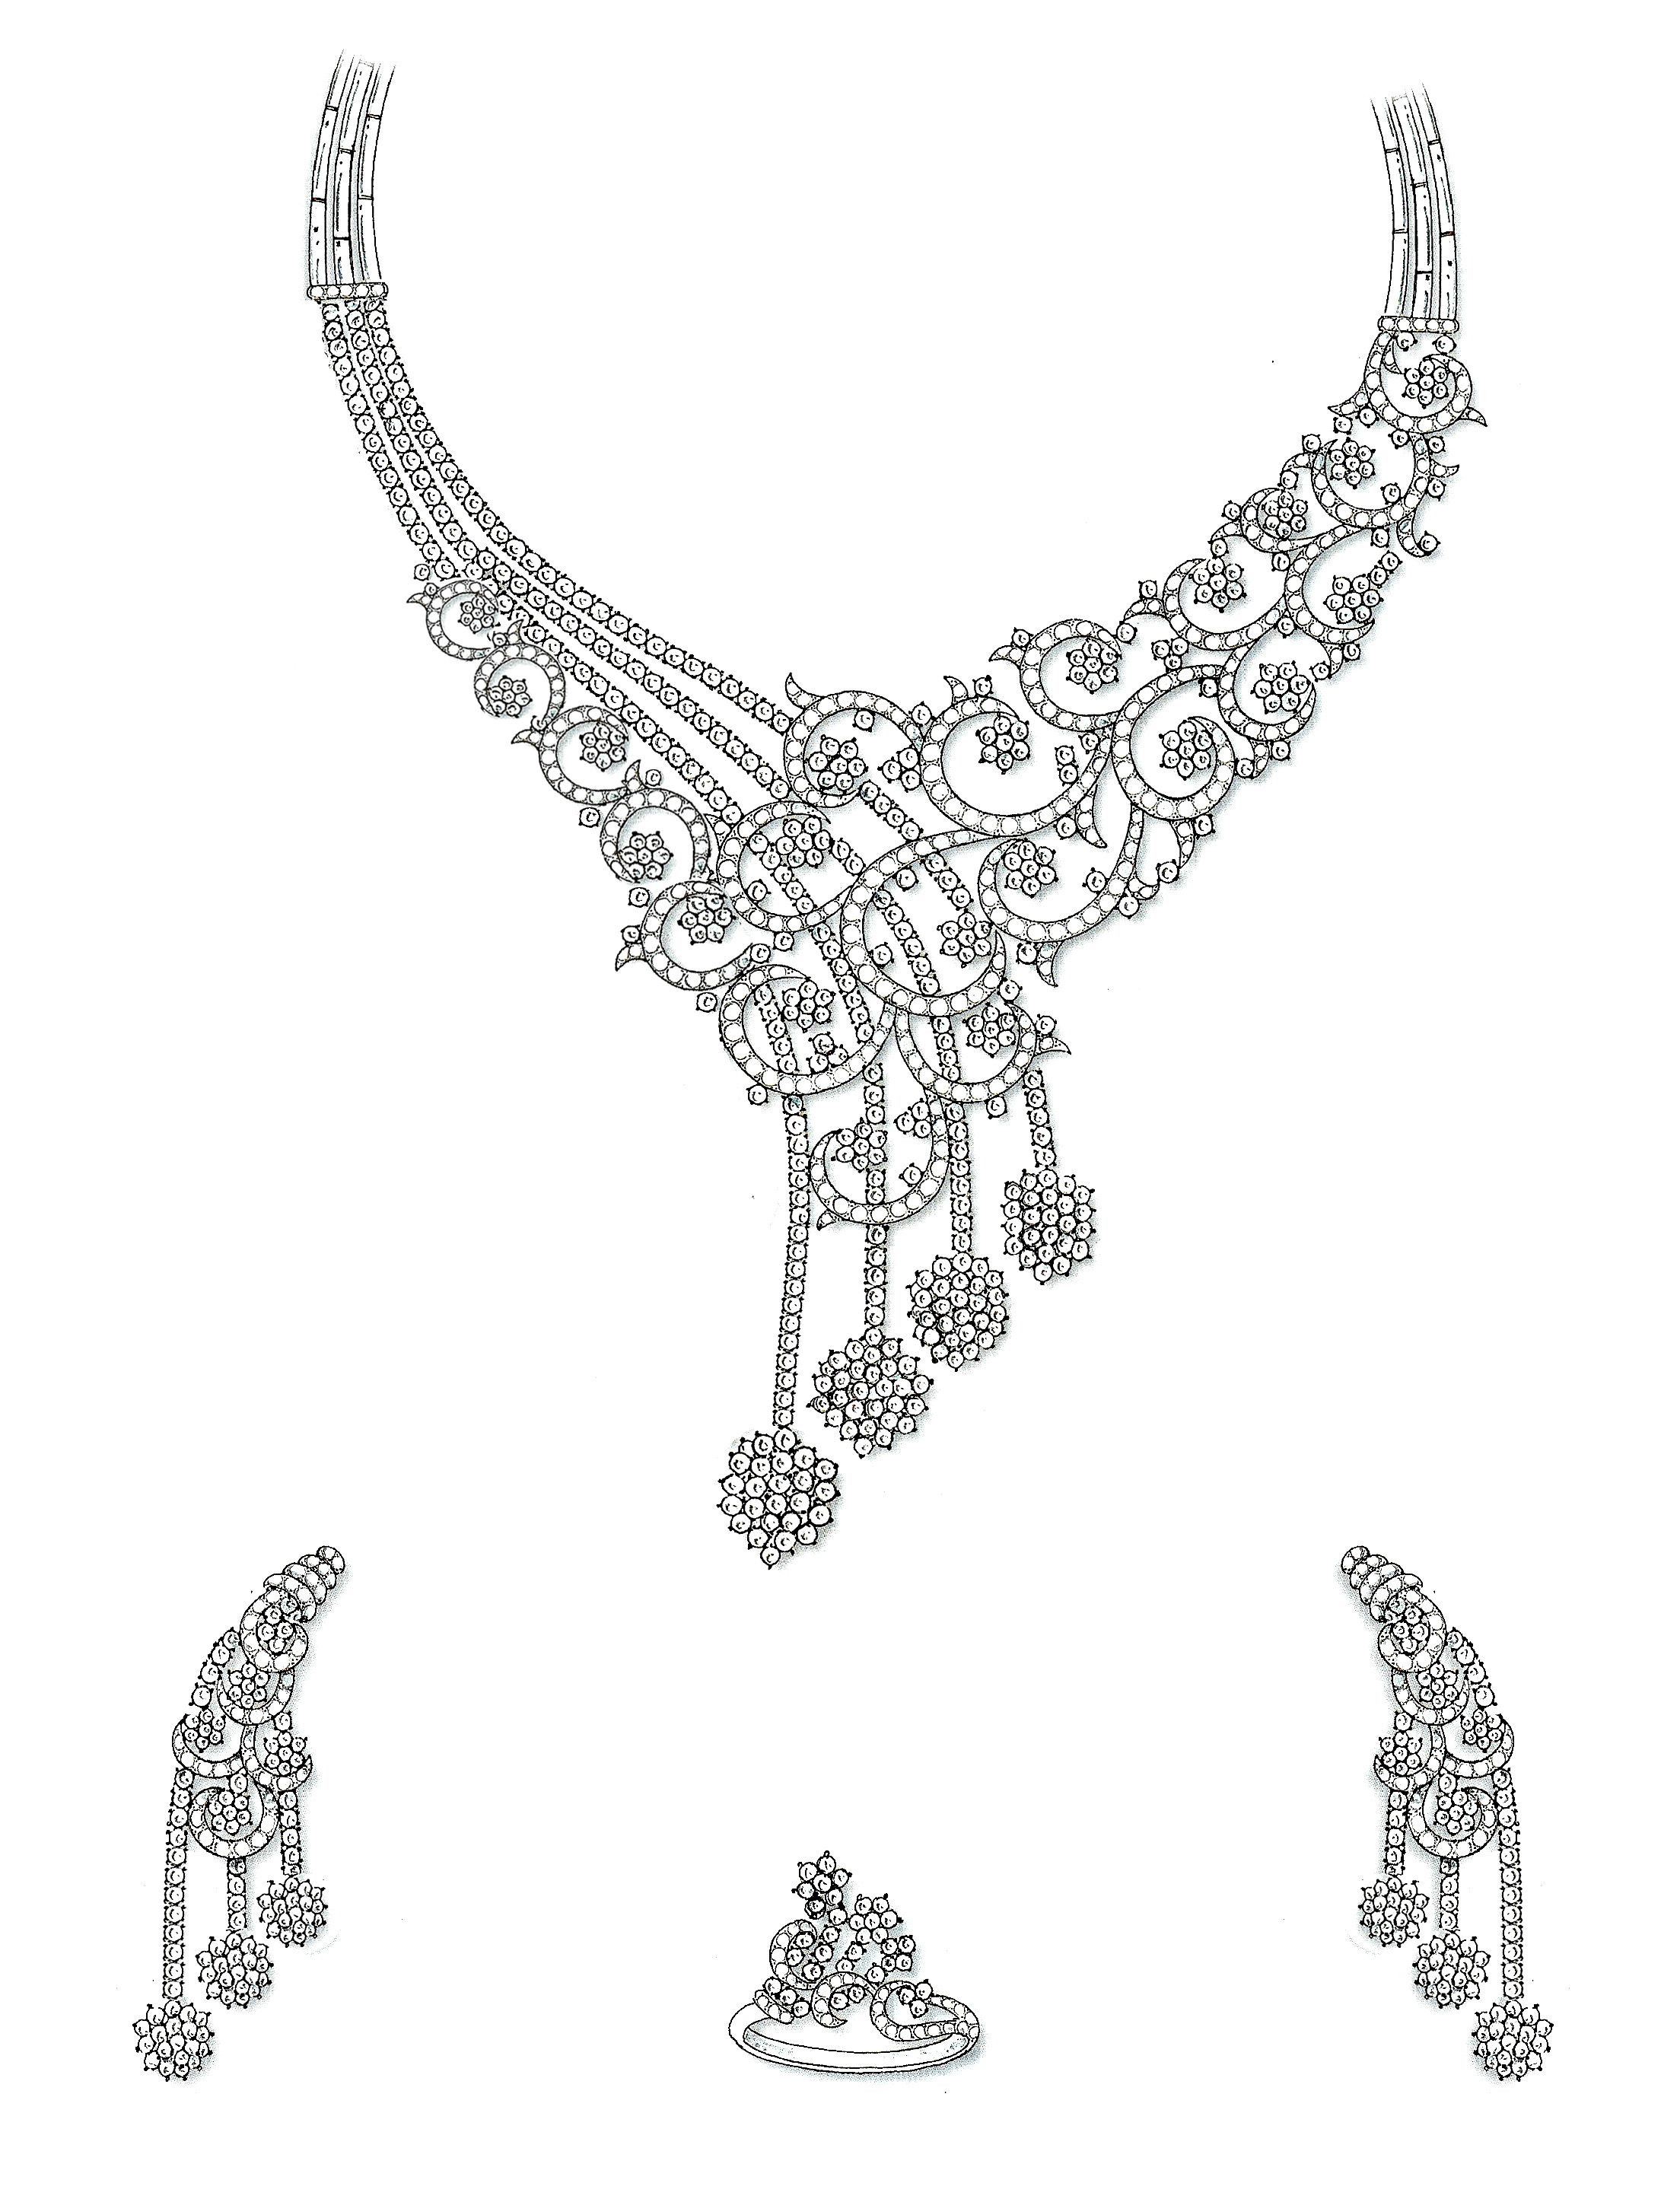 Necklace Design Sketches | Print Photos | View Full-Size ...